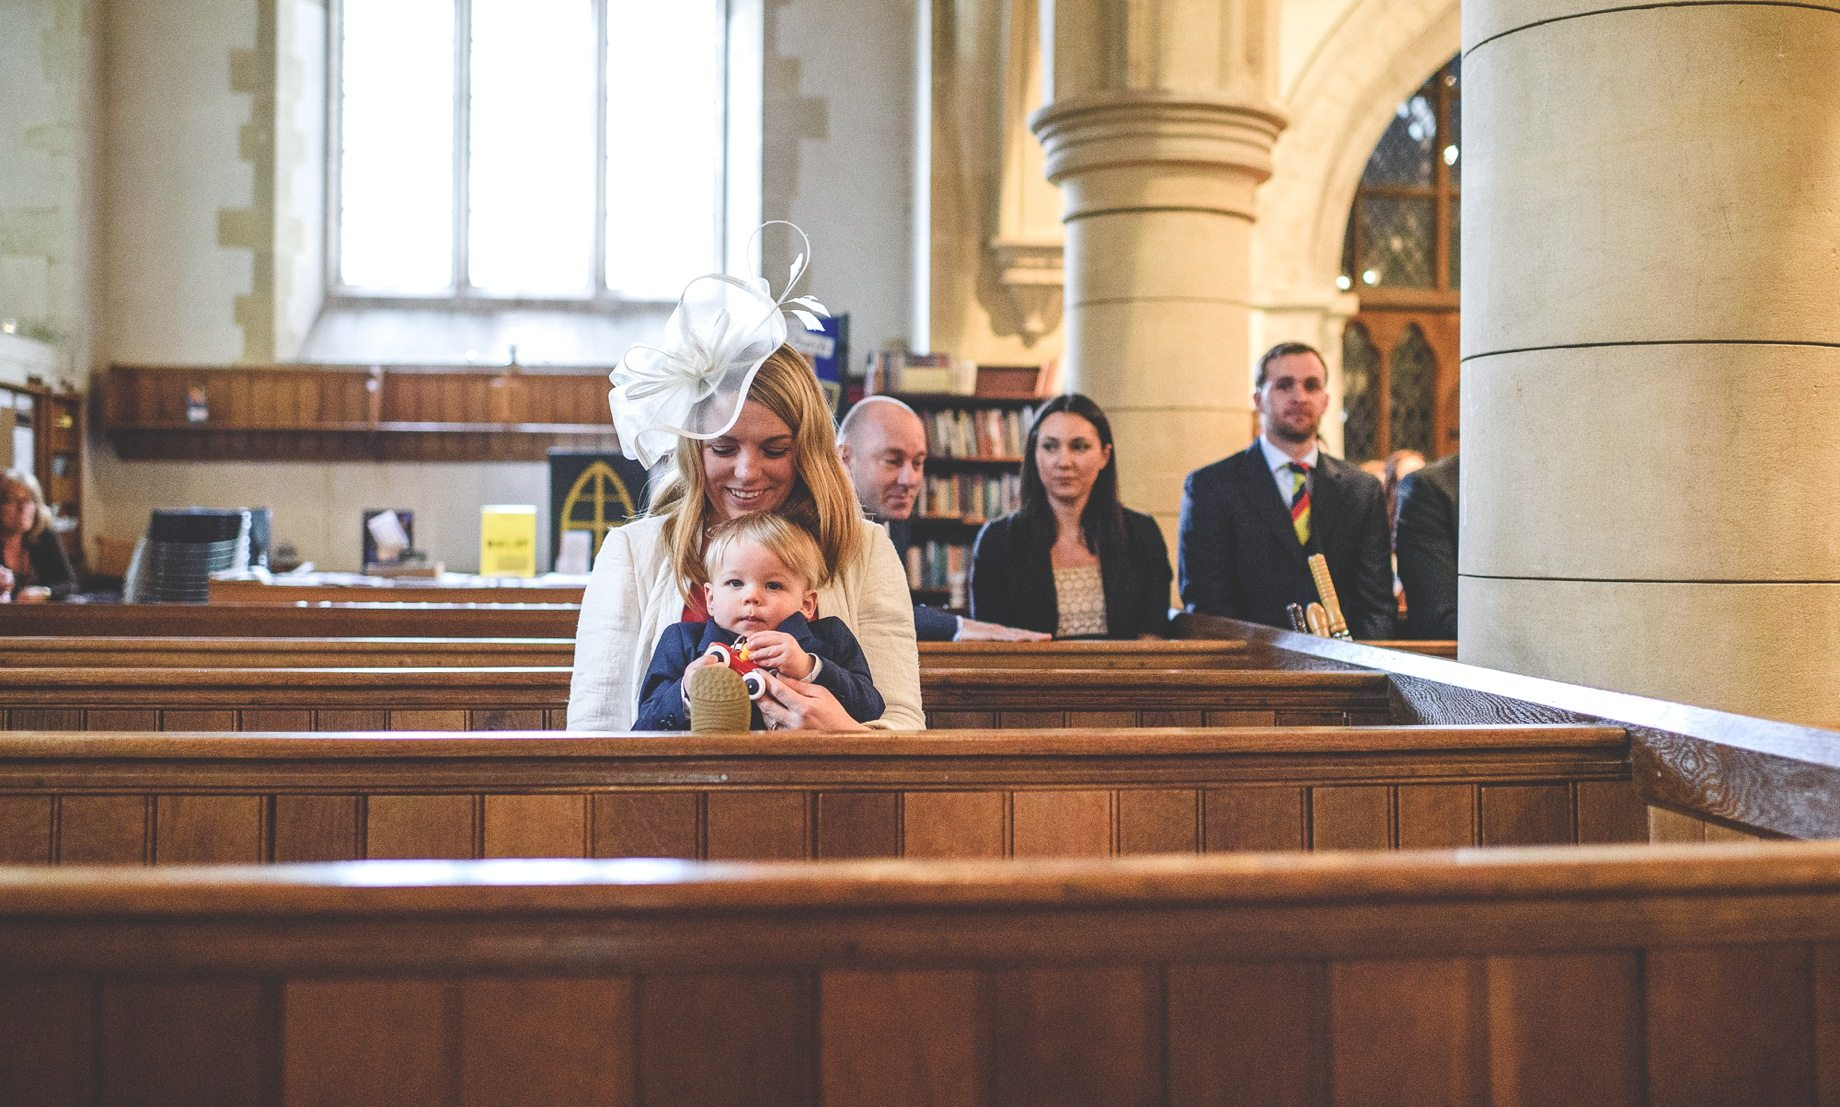 Heather and Chris - Hampshire wedding photography (81 of 174)